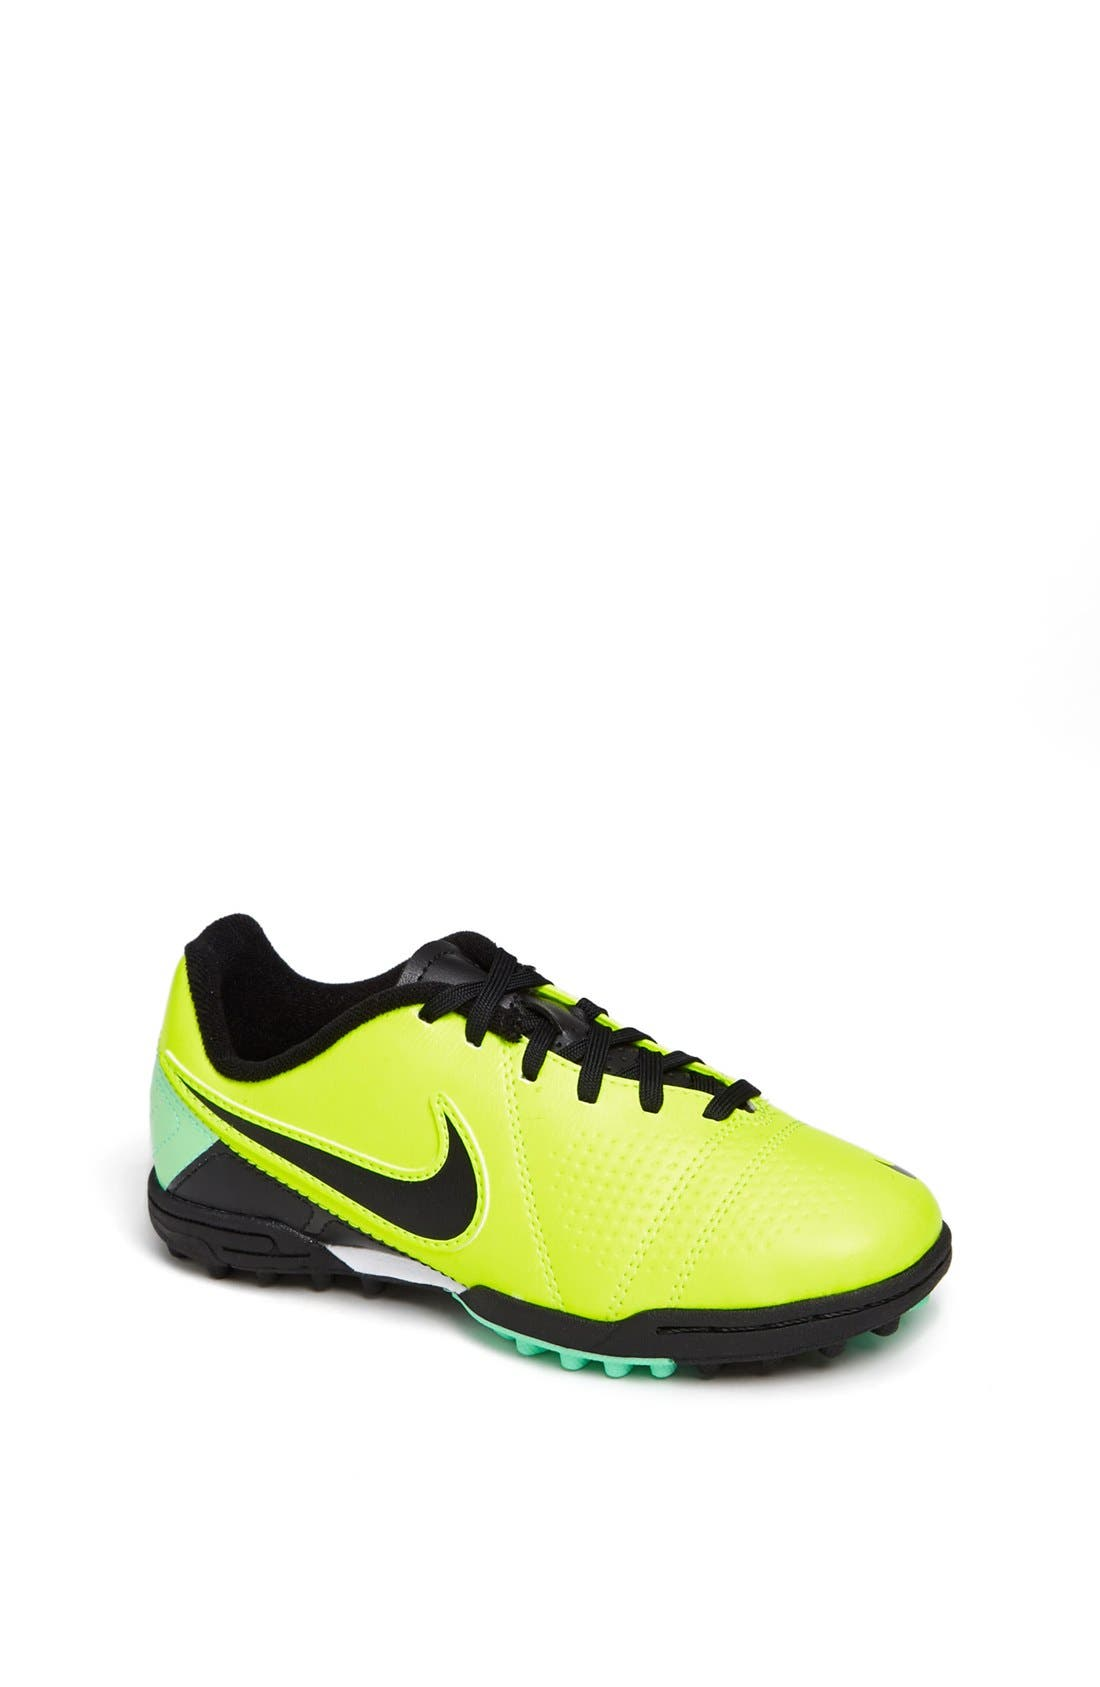 Alternate Image 1 Selected - Nike 'CTR 360 Libretto III' Indoor Soccer Cleat (Toddler, Little Kid & Big Kid)